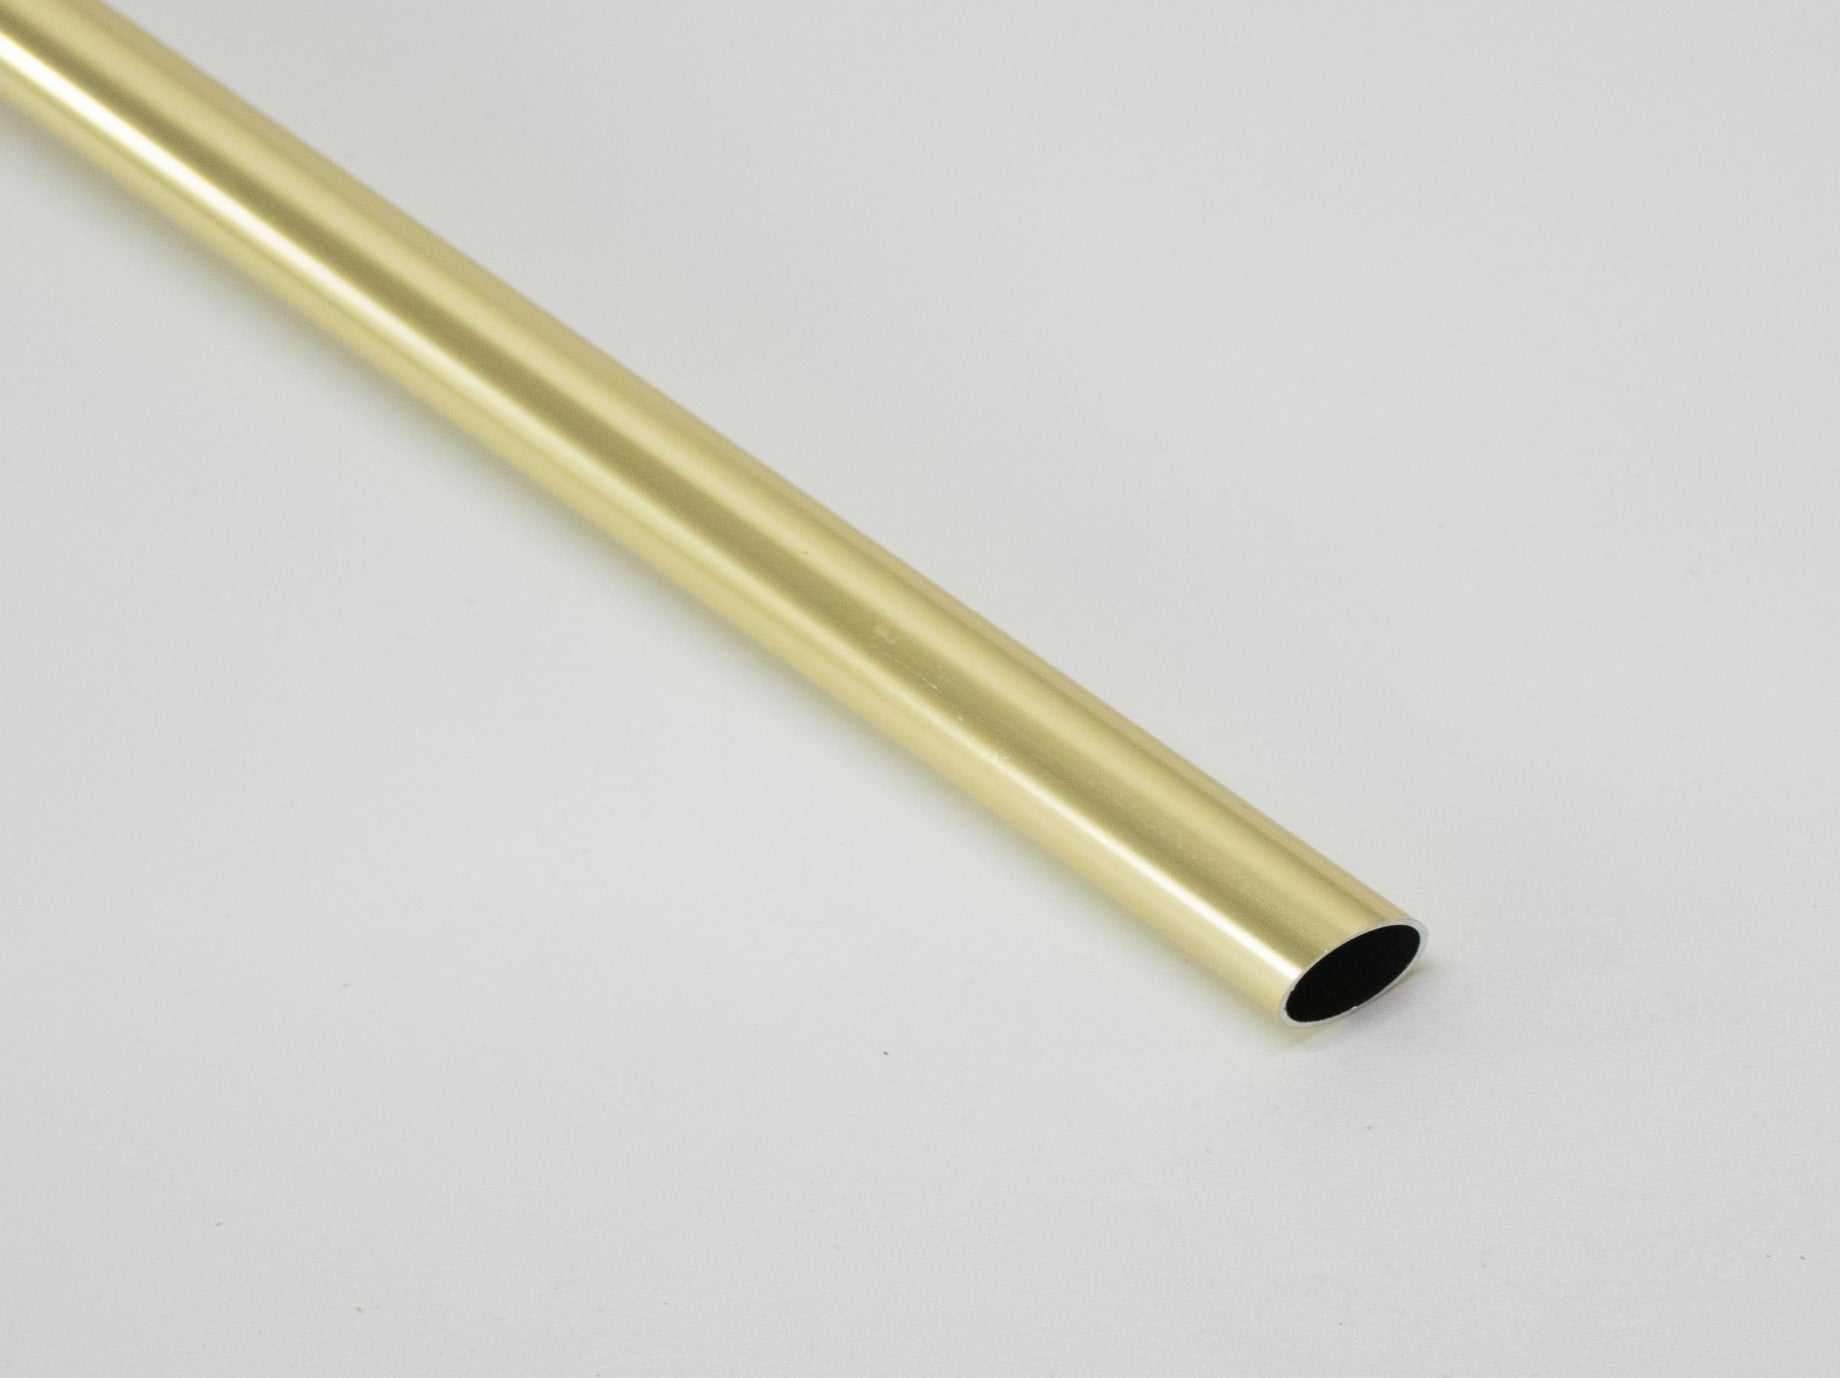 16mm ROD BRASS GOLD